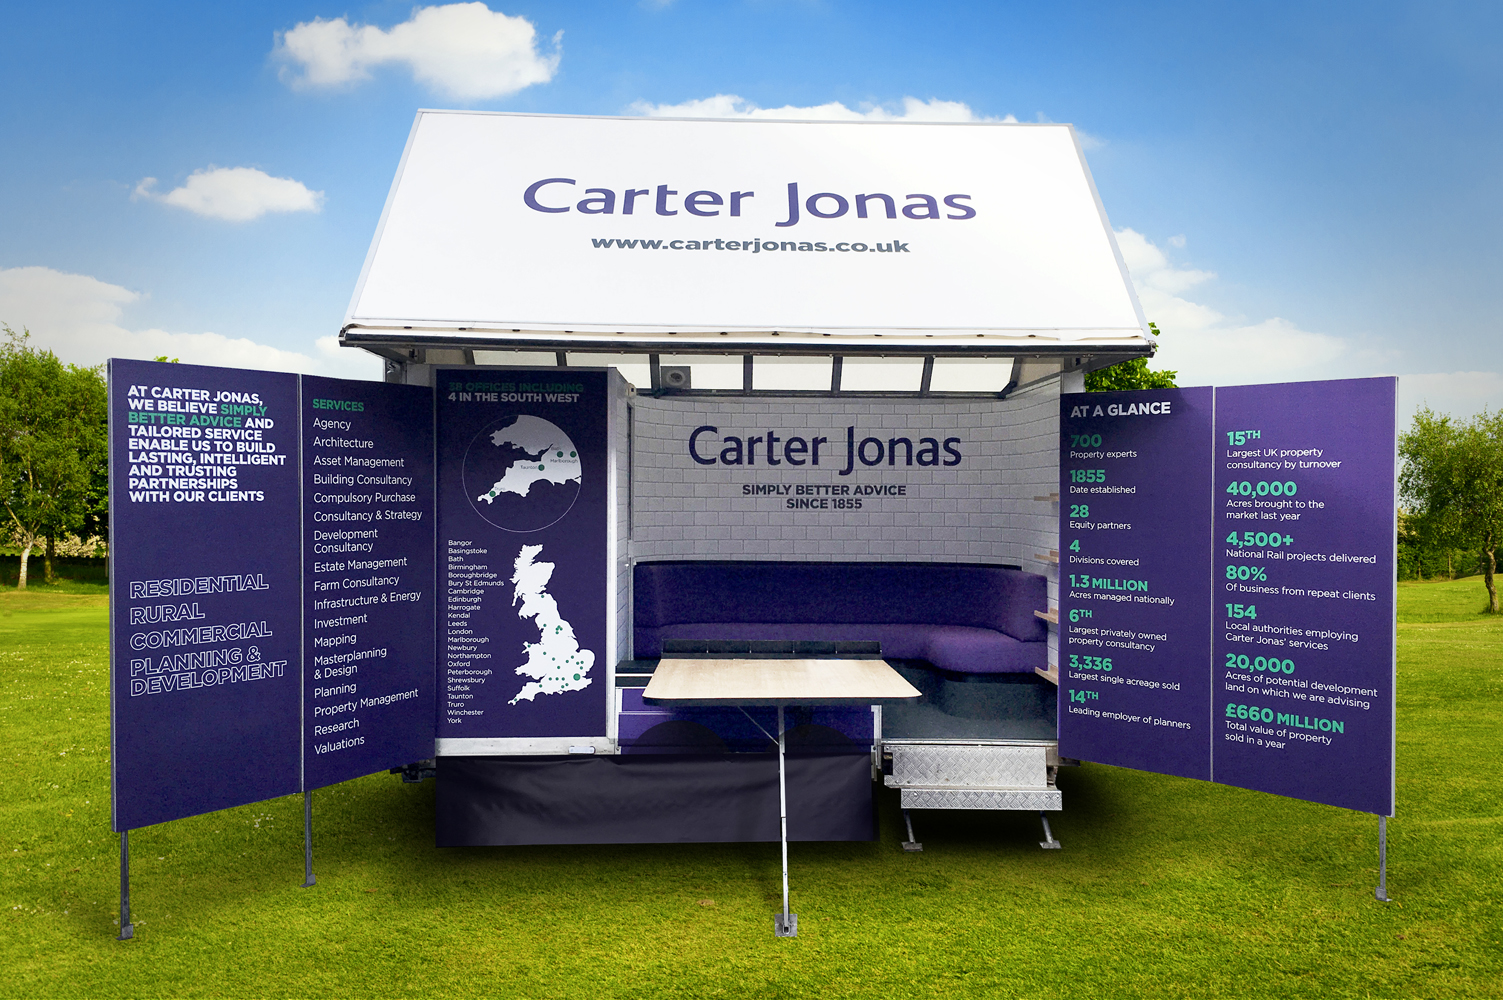 Carter Jonas exhibition trailer